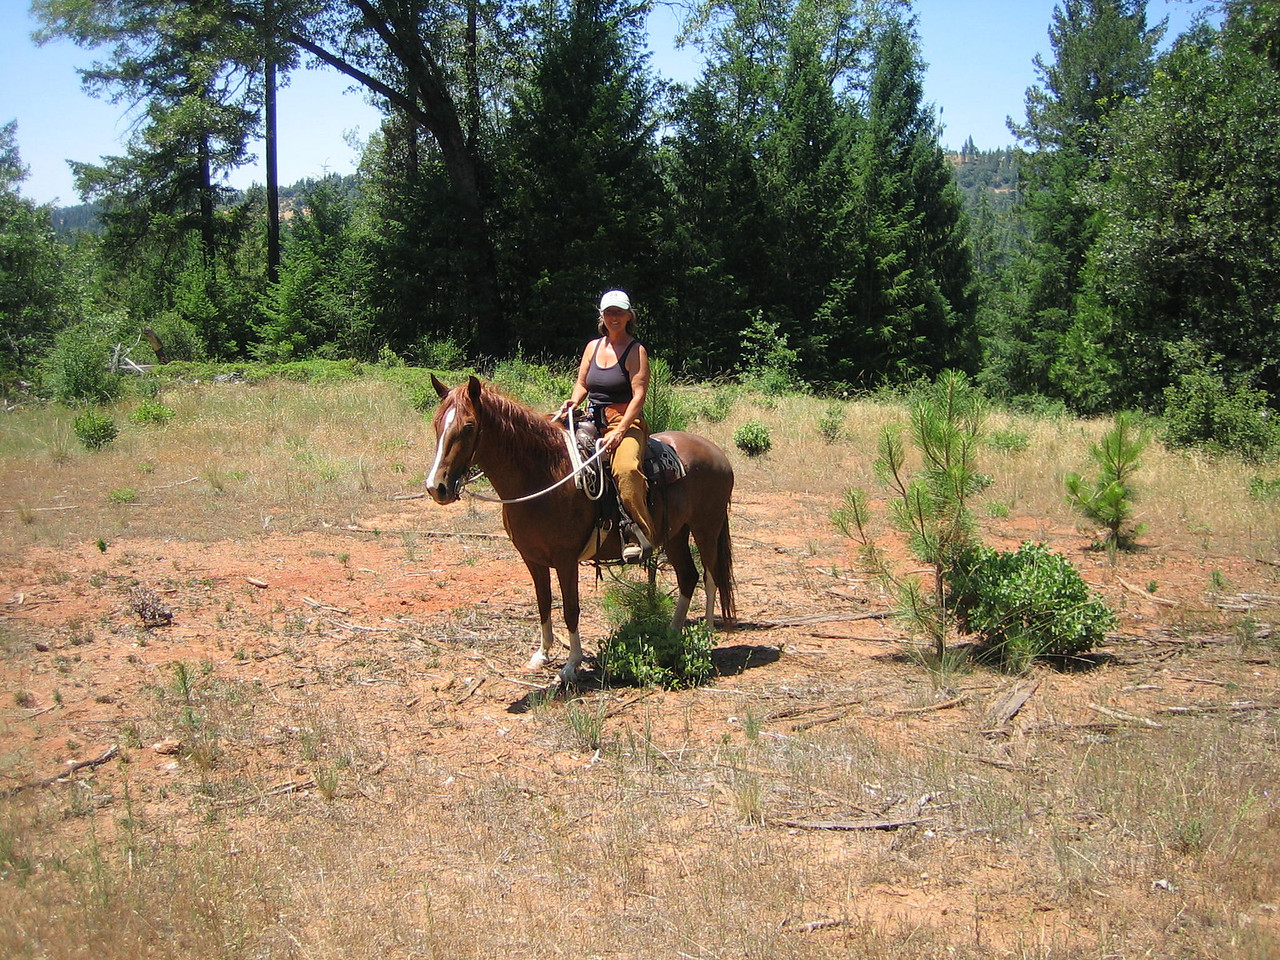 Briosa and me on trail ride summer 2008